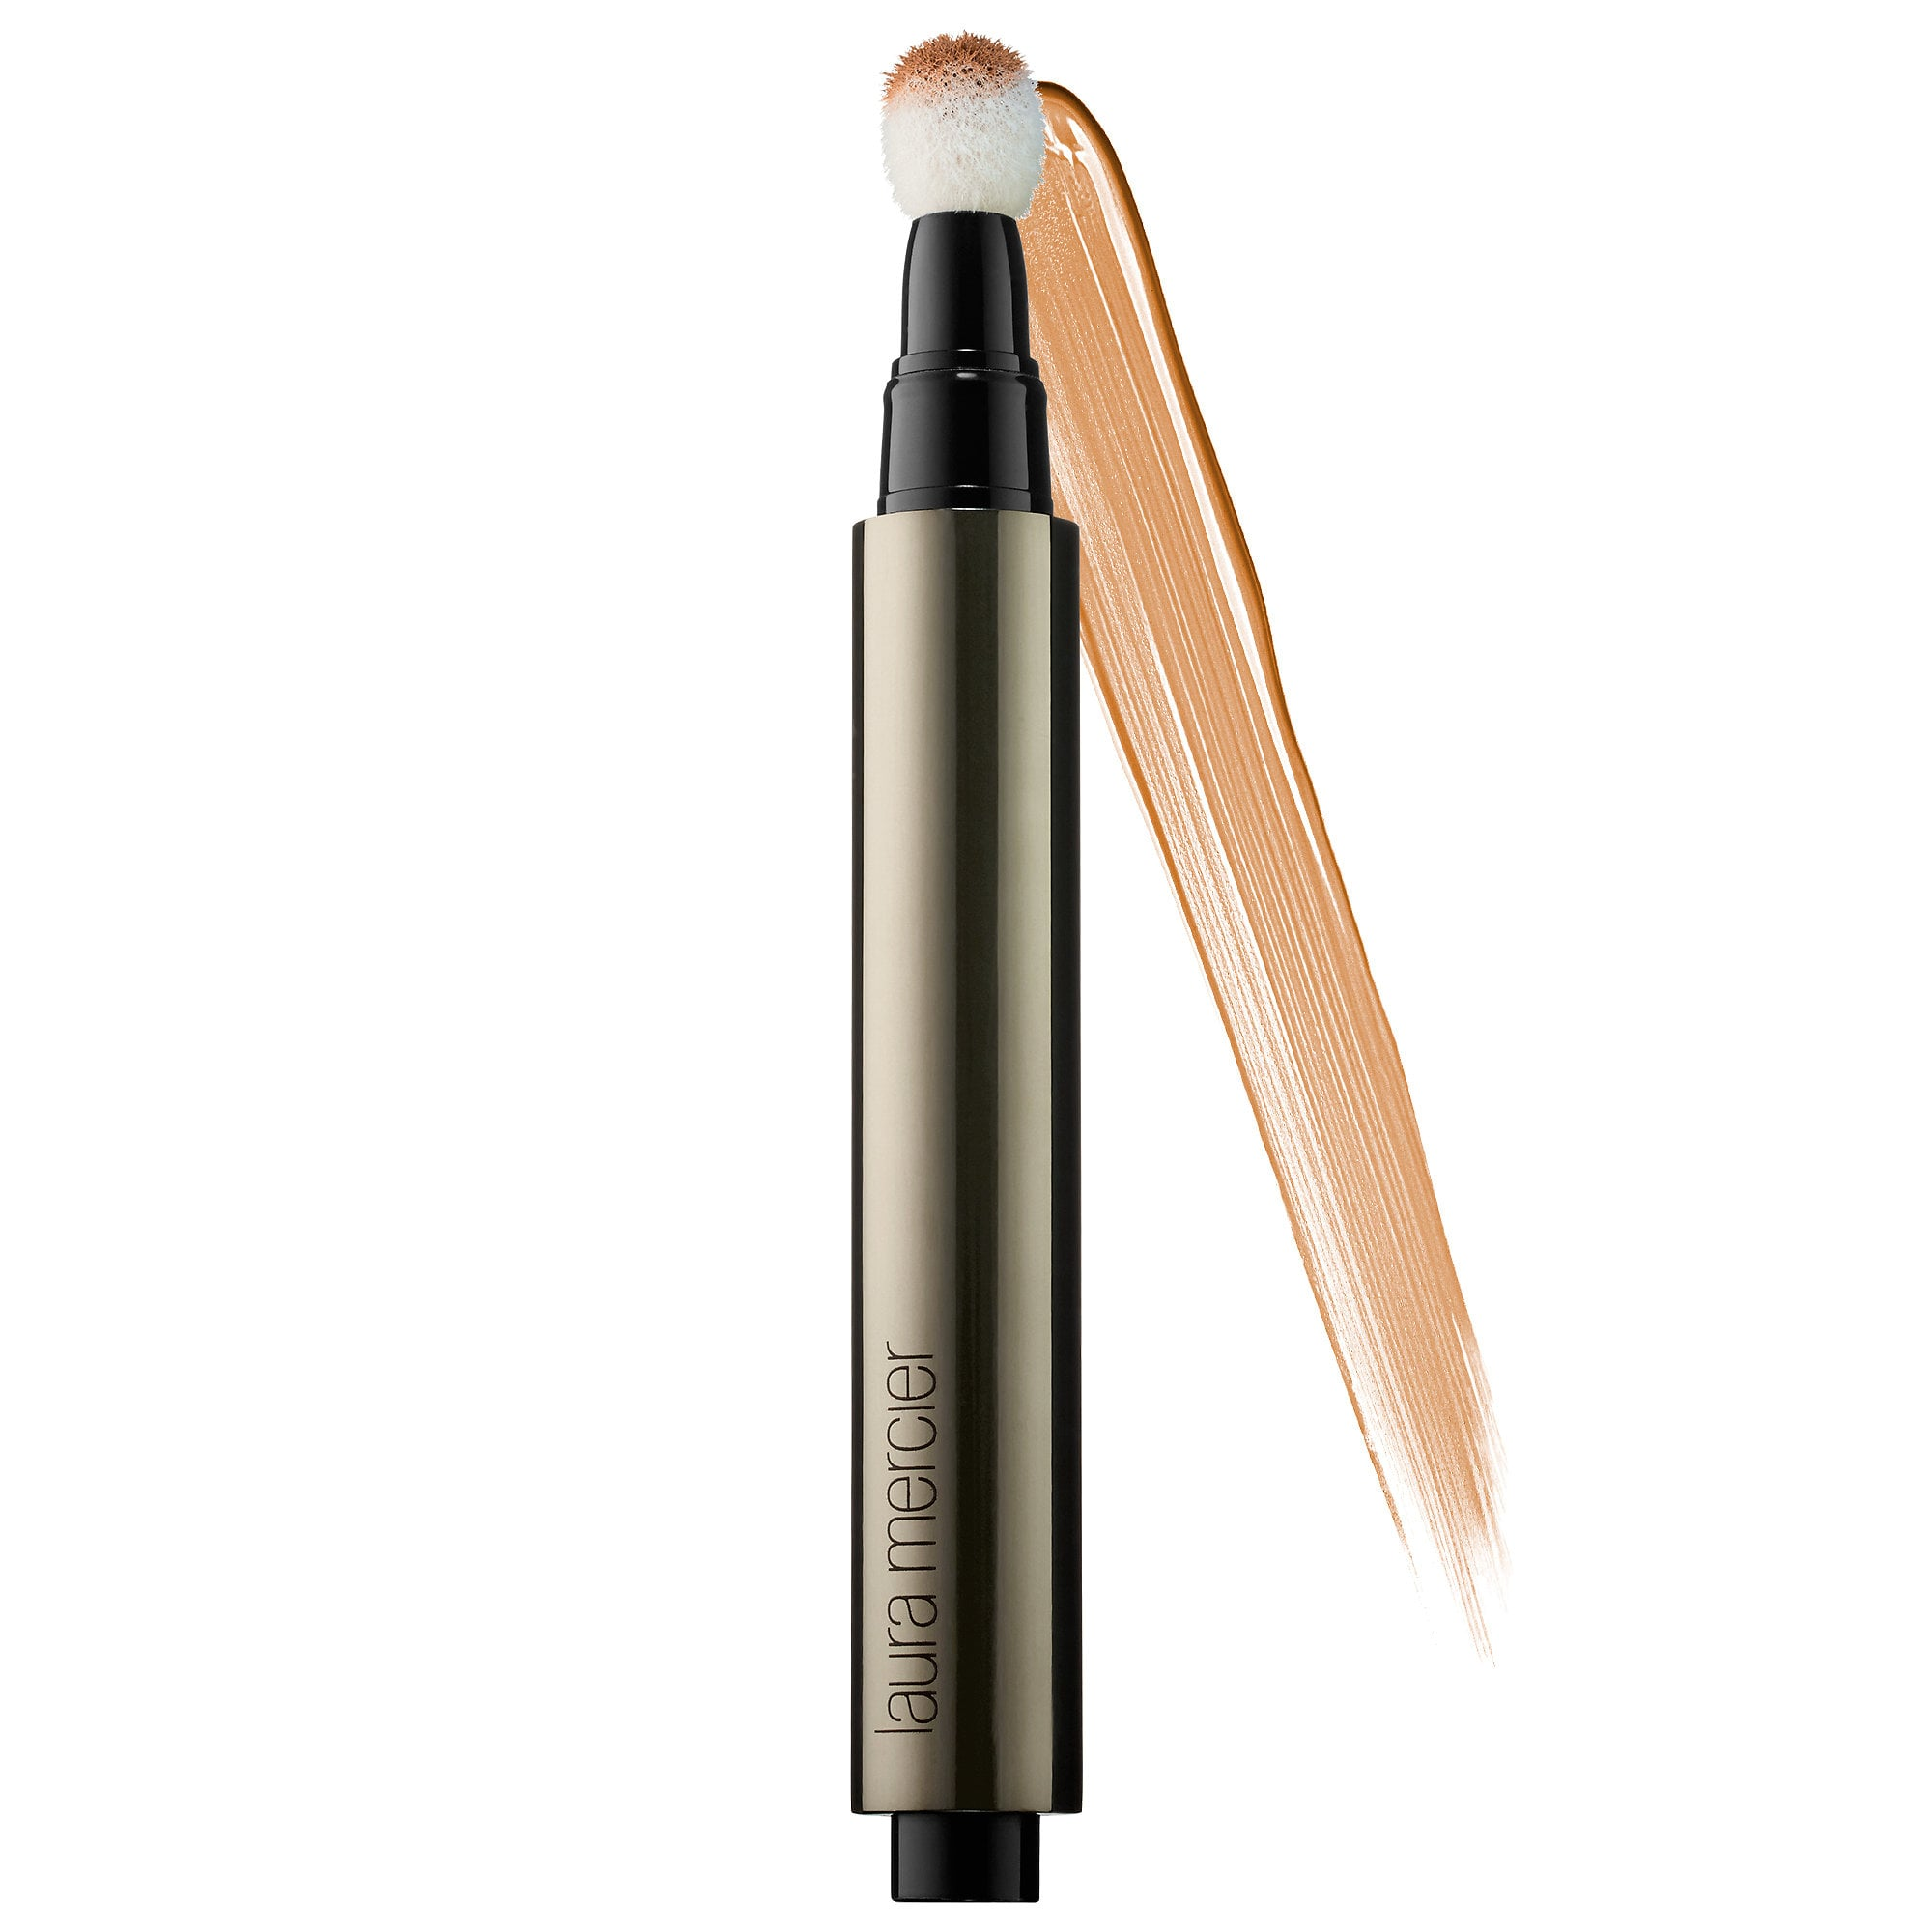 Candleglow Concealer and Highlighter